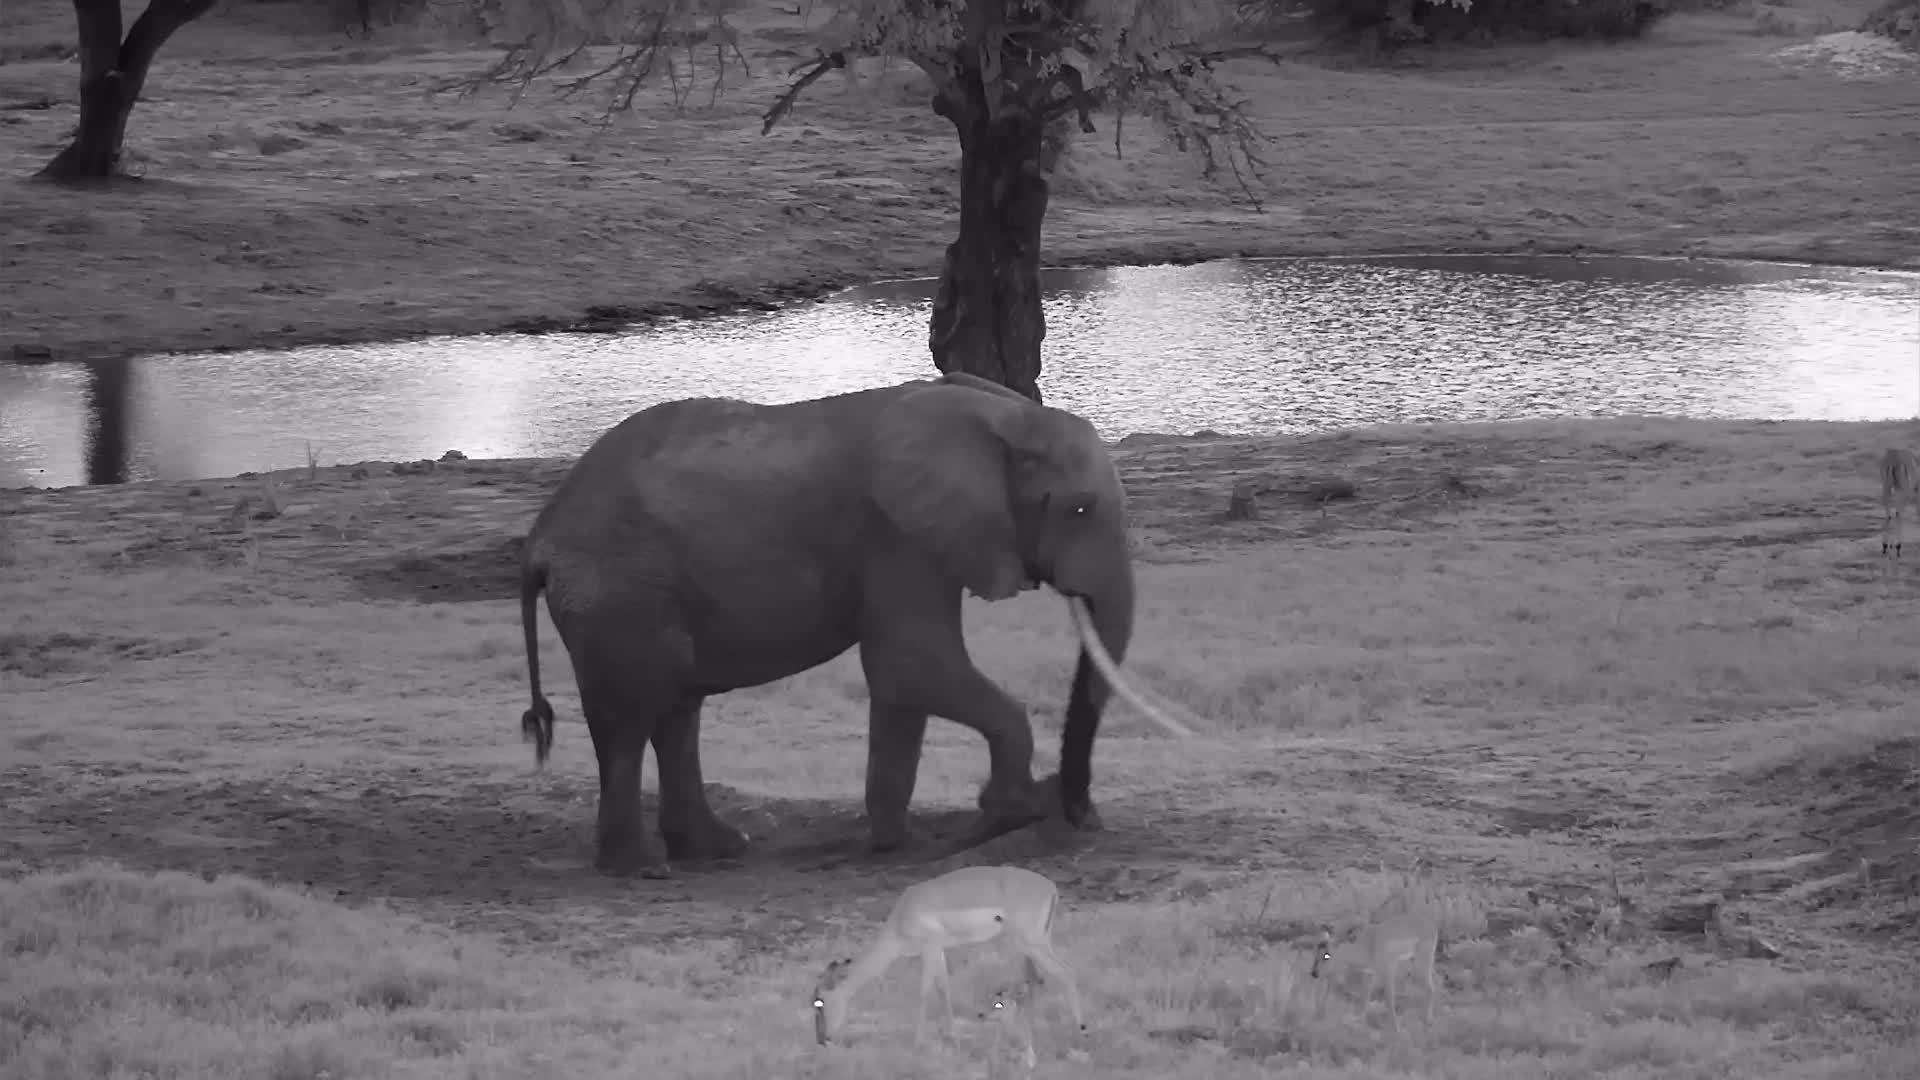 VIDEO:  Elephant:  After a drink, a good dusting and a great scratching post